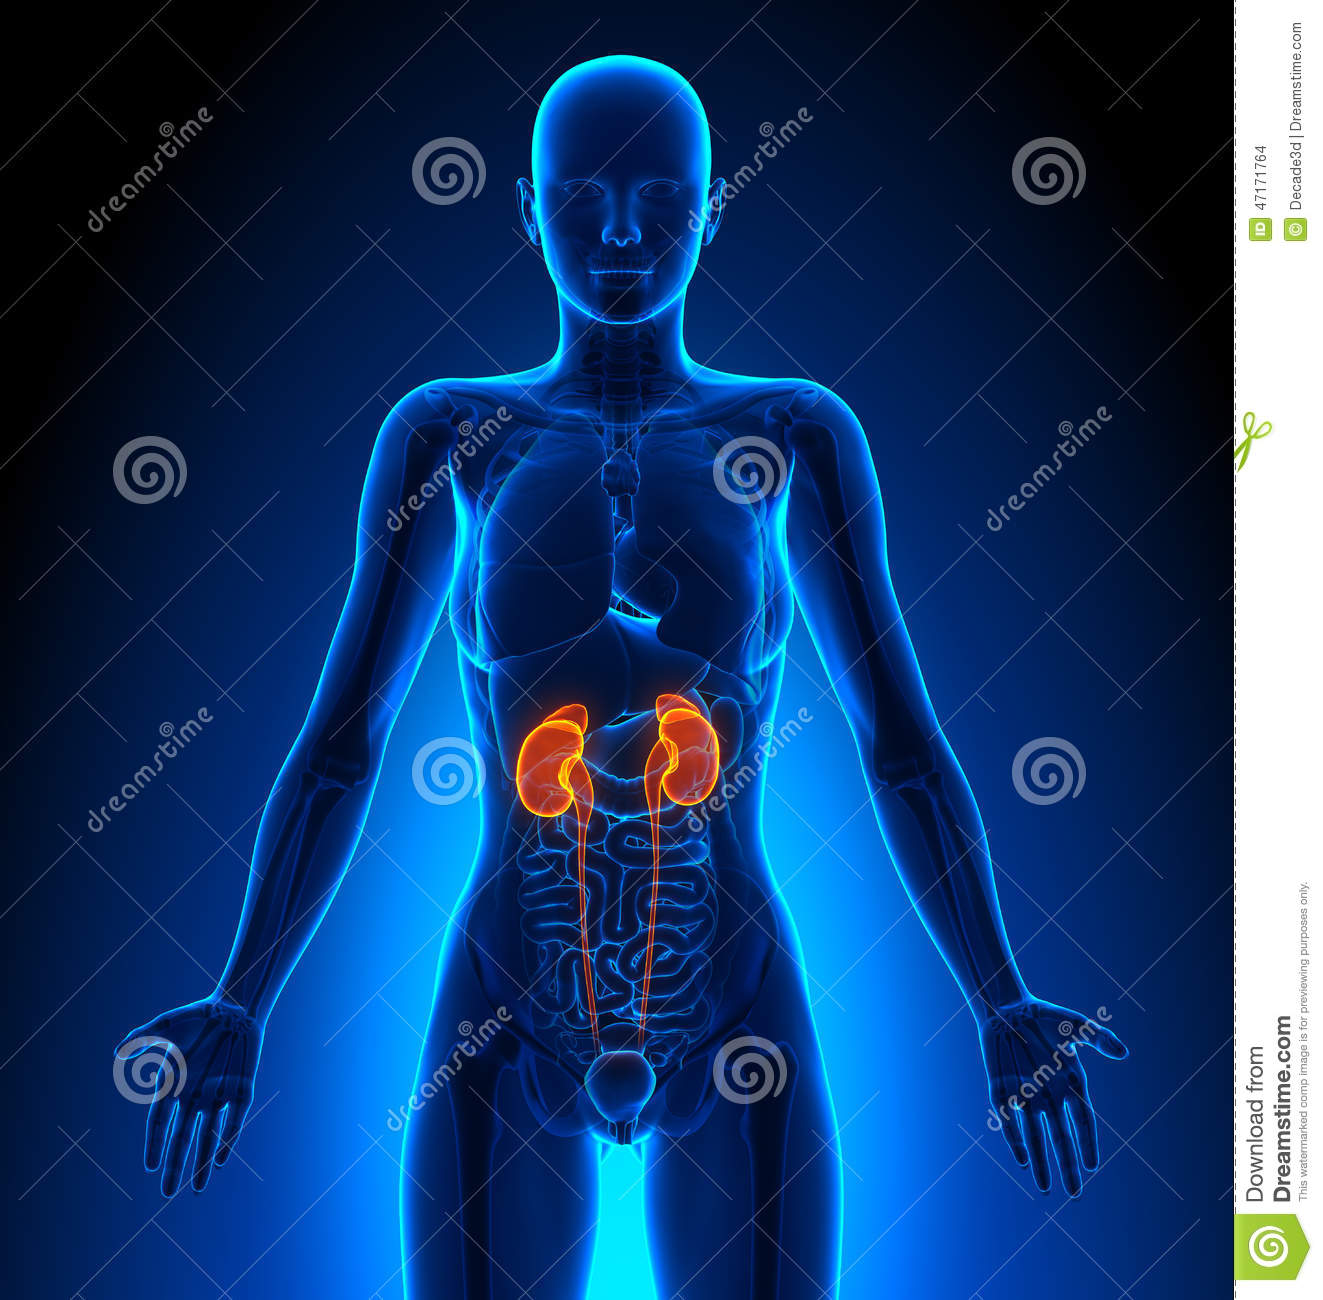 Kidneys Female Organs Human Anatomy Stock Illustration